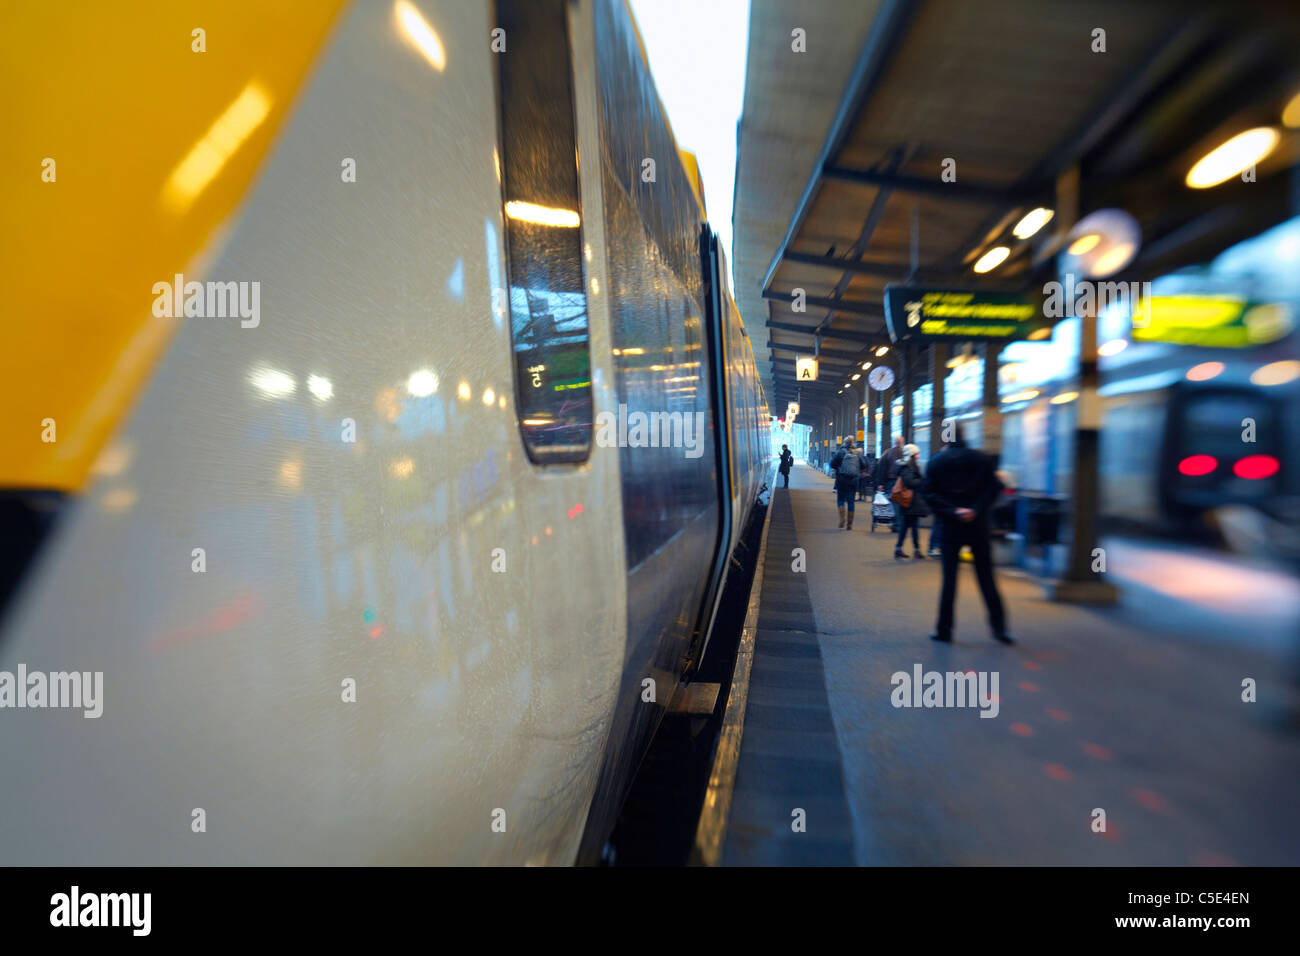 Close-up of a train at the railway station platform - Stock Image